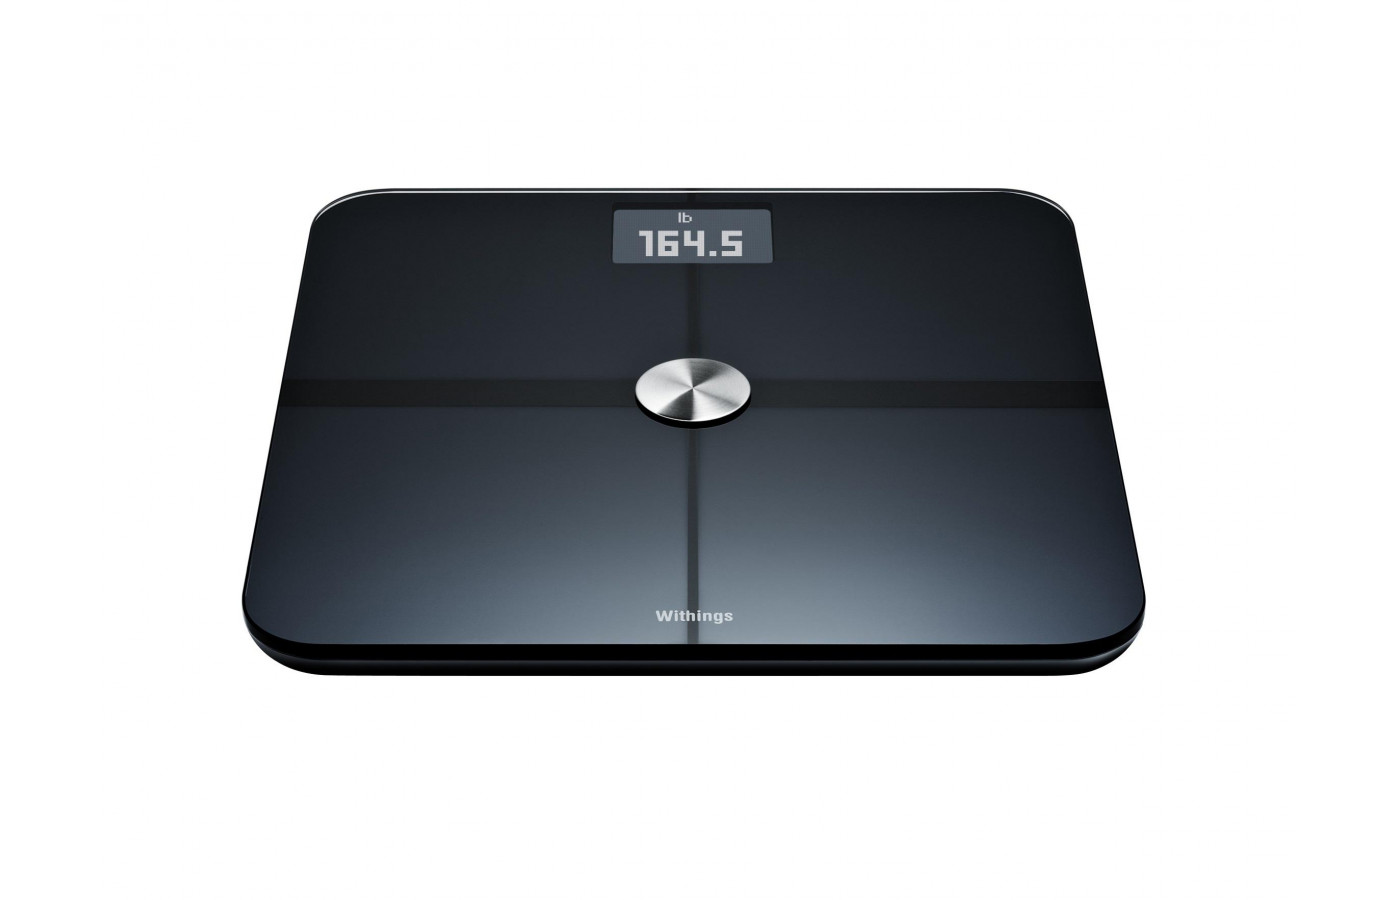 withings body+ scale bottom